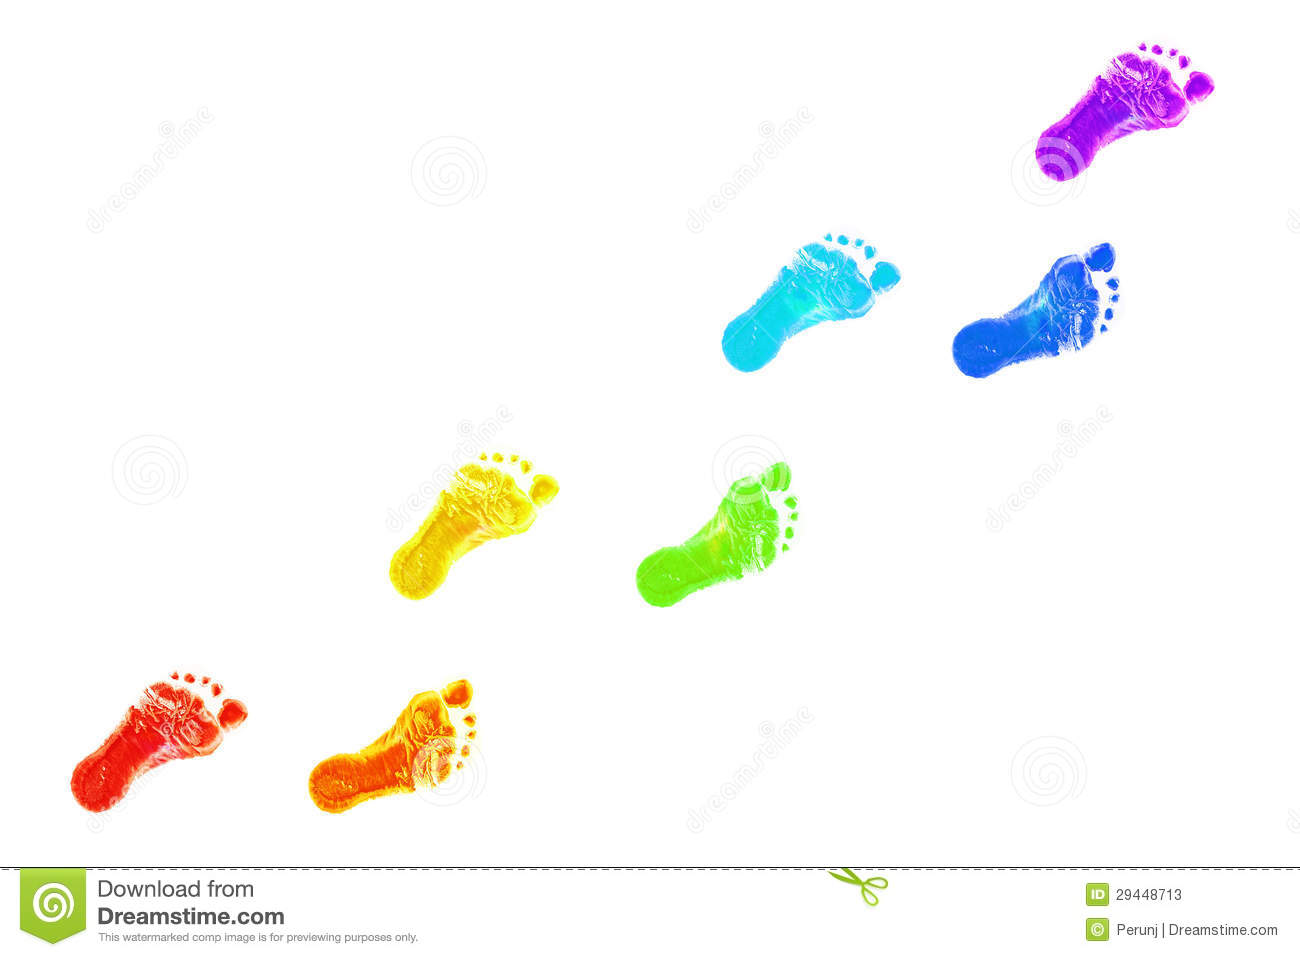 Clip art foot prints.